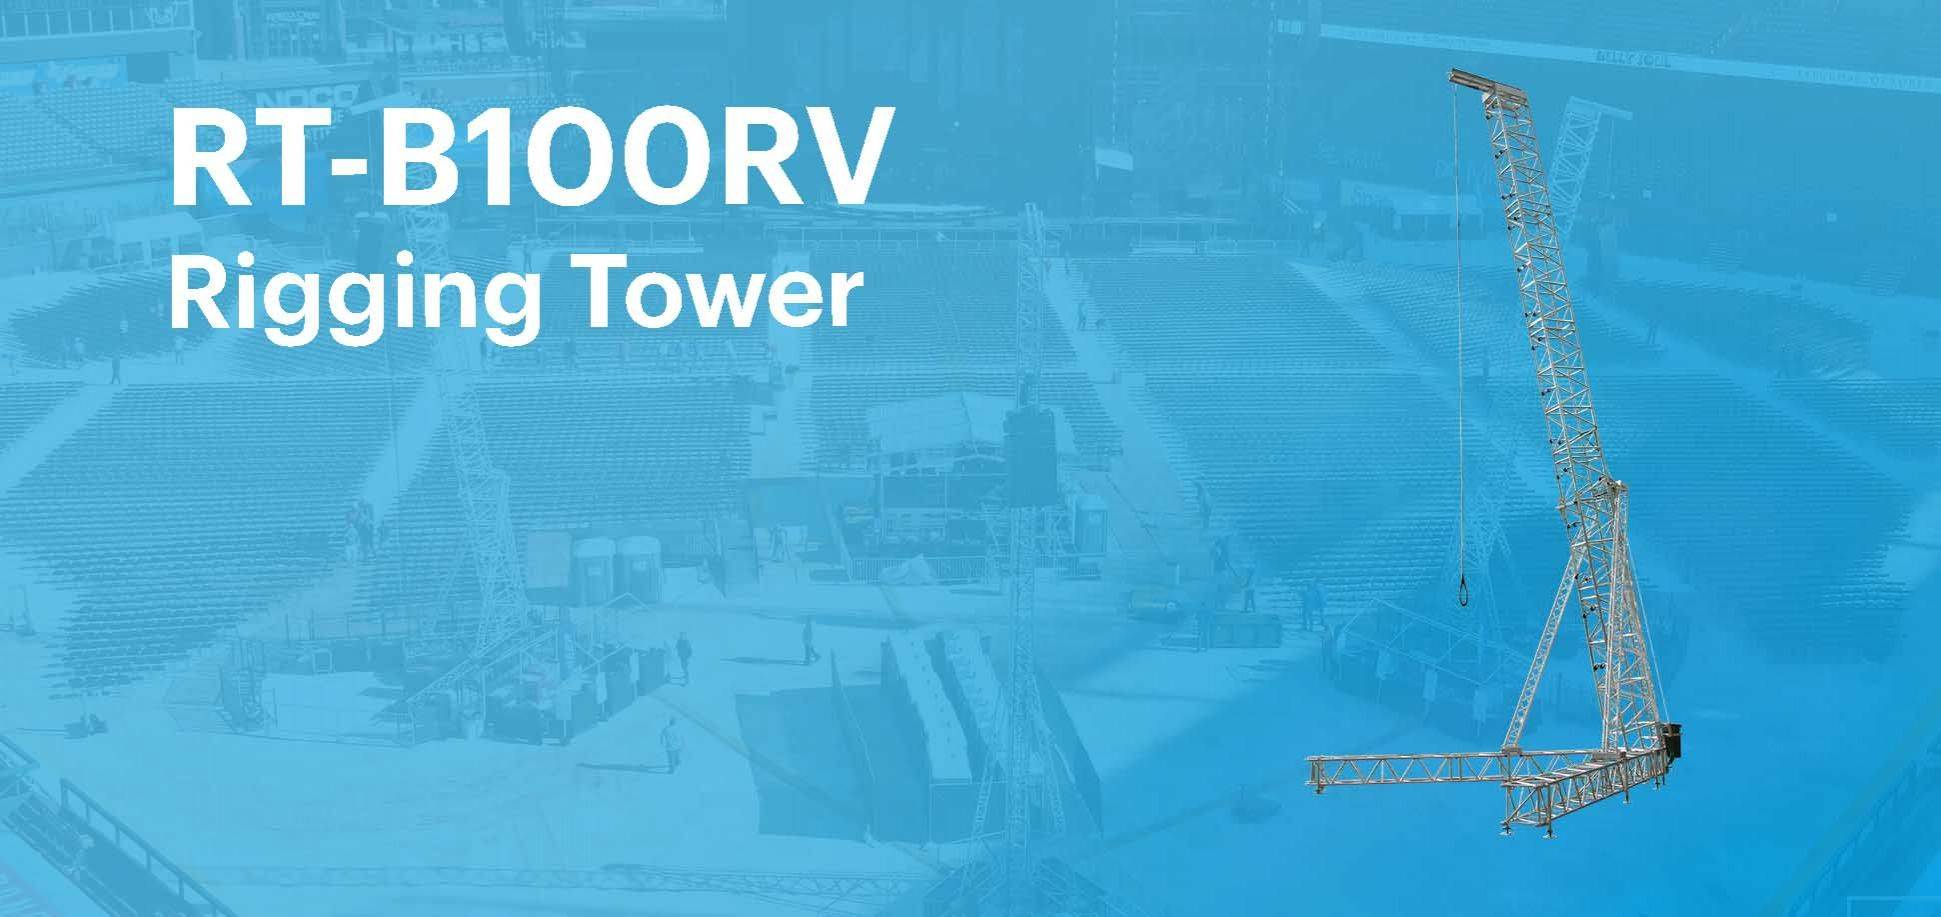 Product Focus - B100RV Rigging Tower